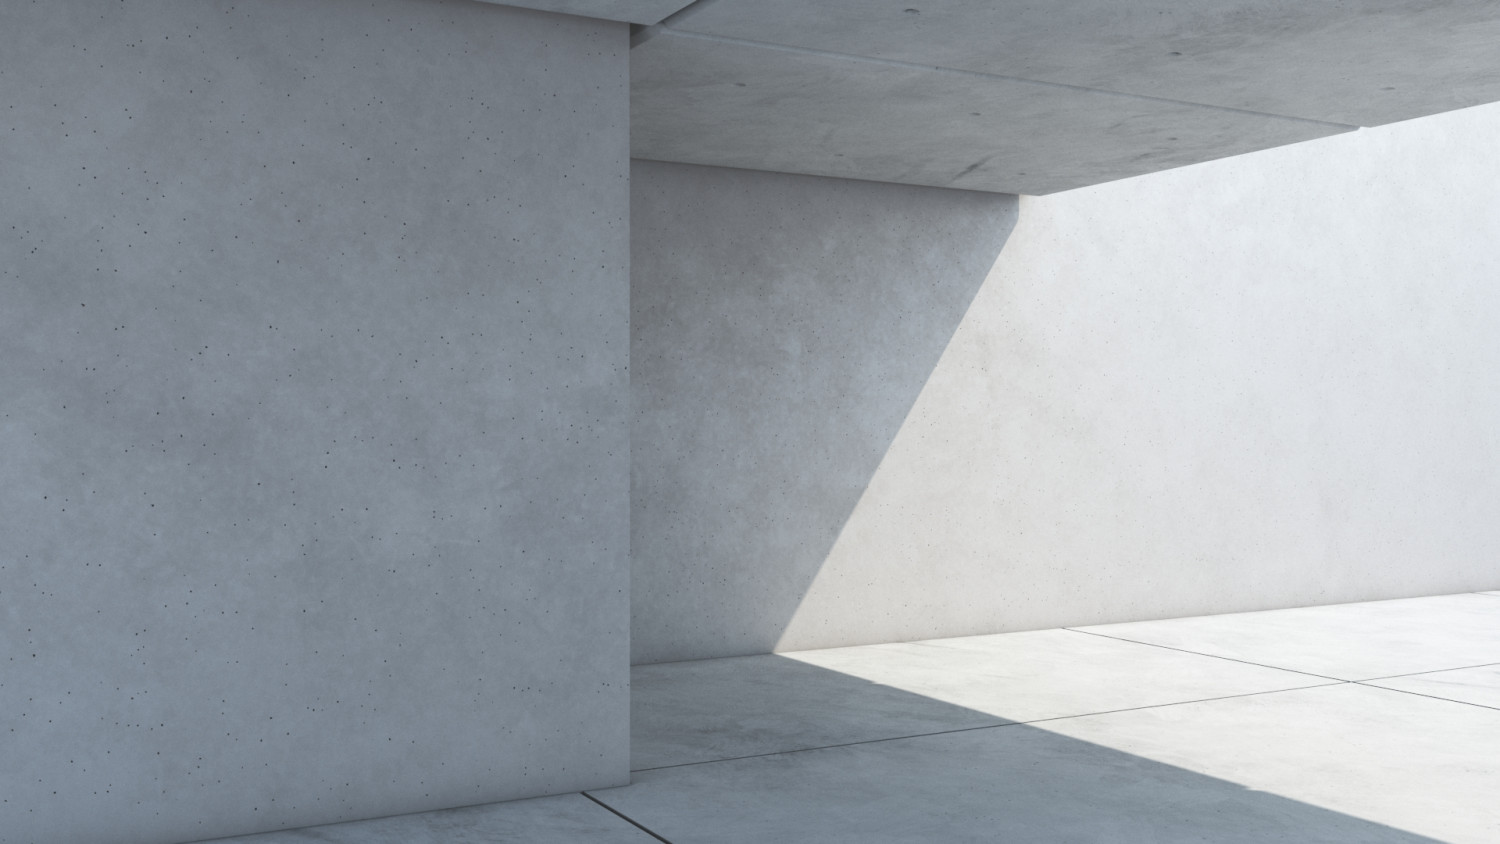 Smooth architectural concrete texture